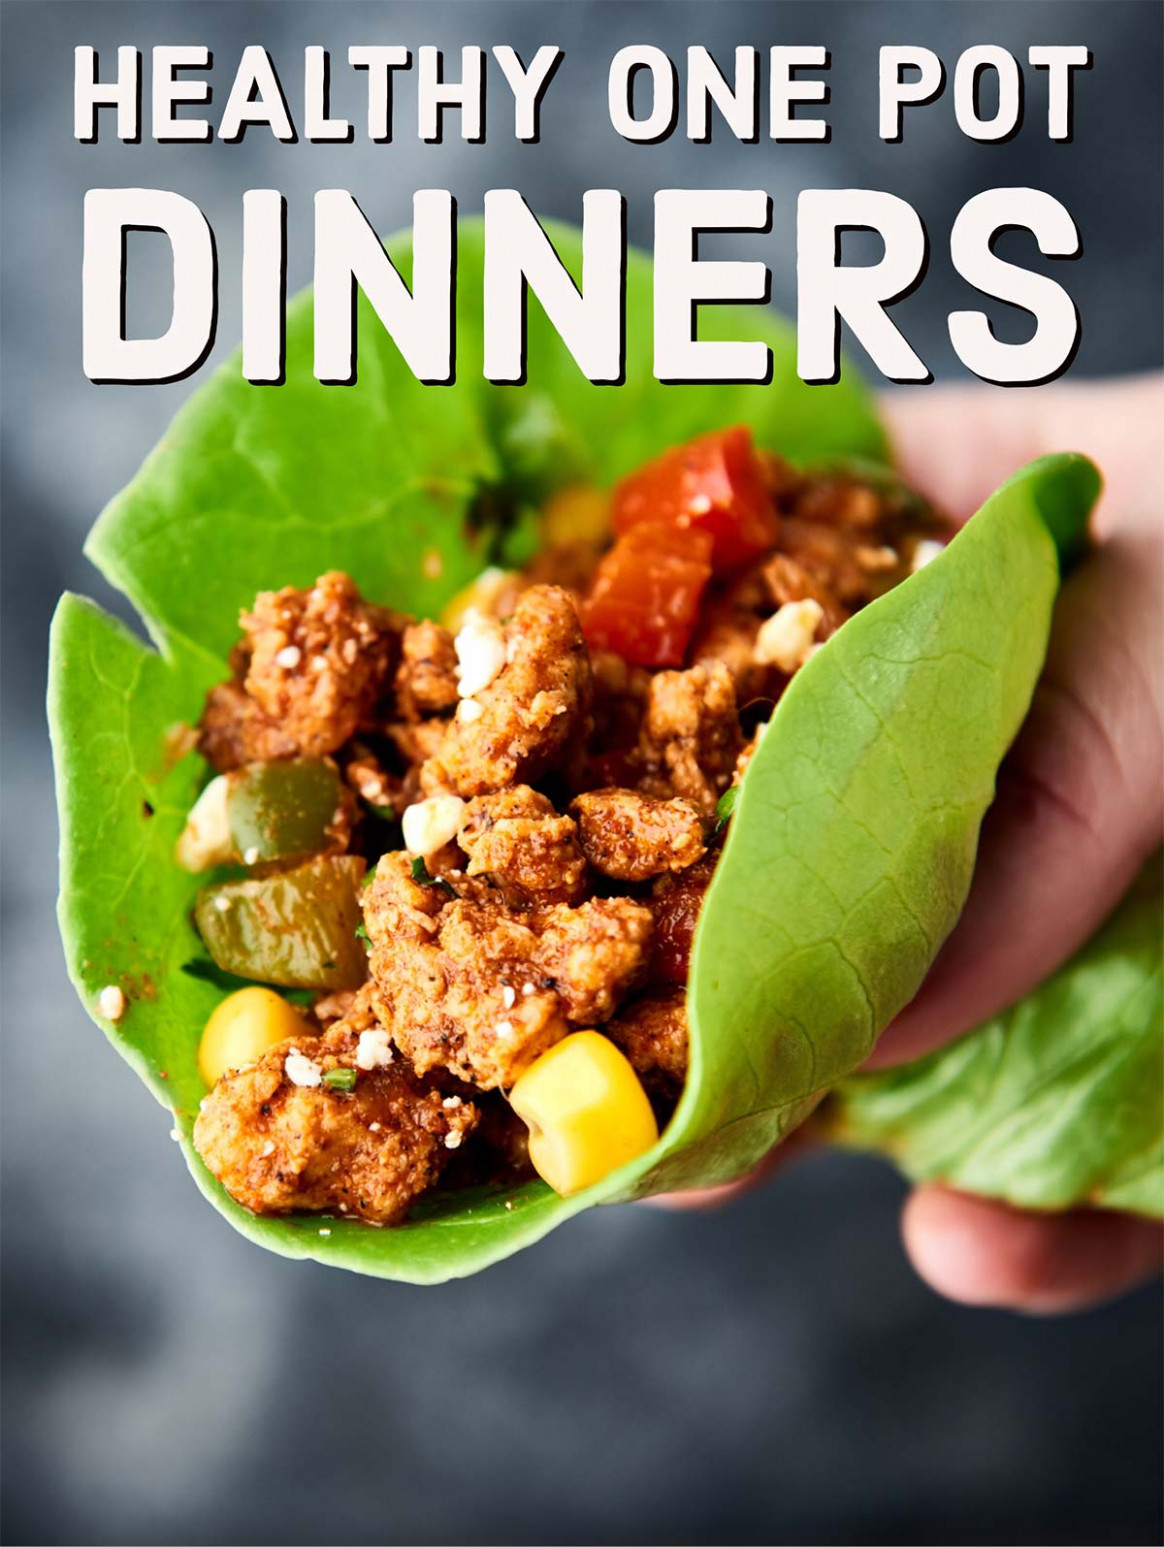 Healthy One Pot Dinner Recipes - Show Me the Yummy - healthy food recipes